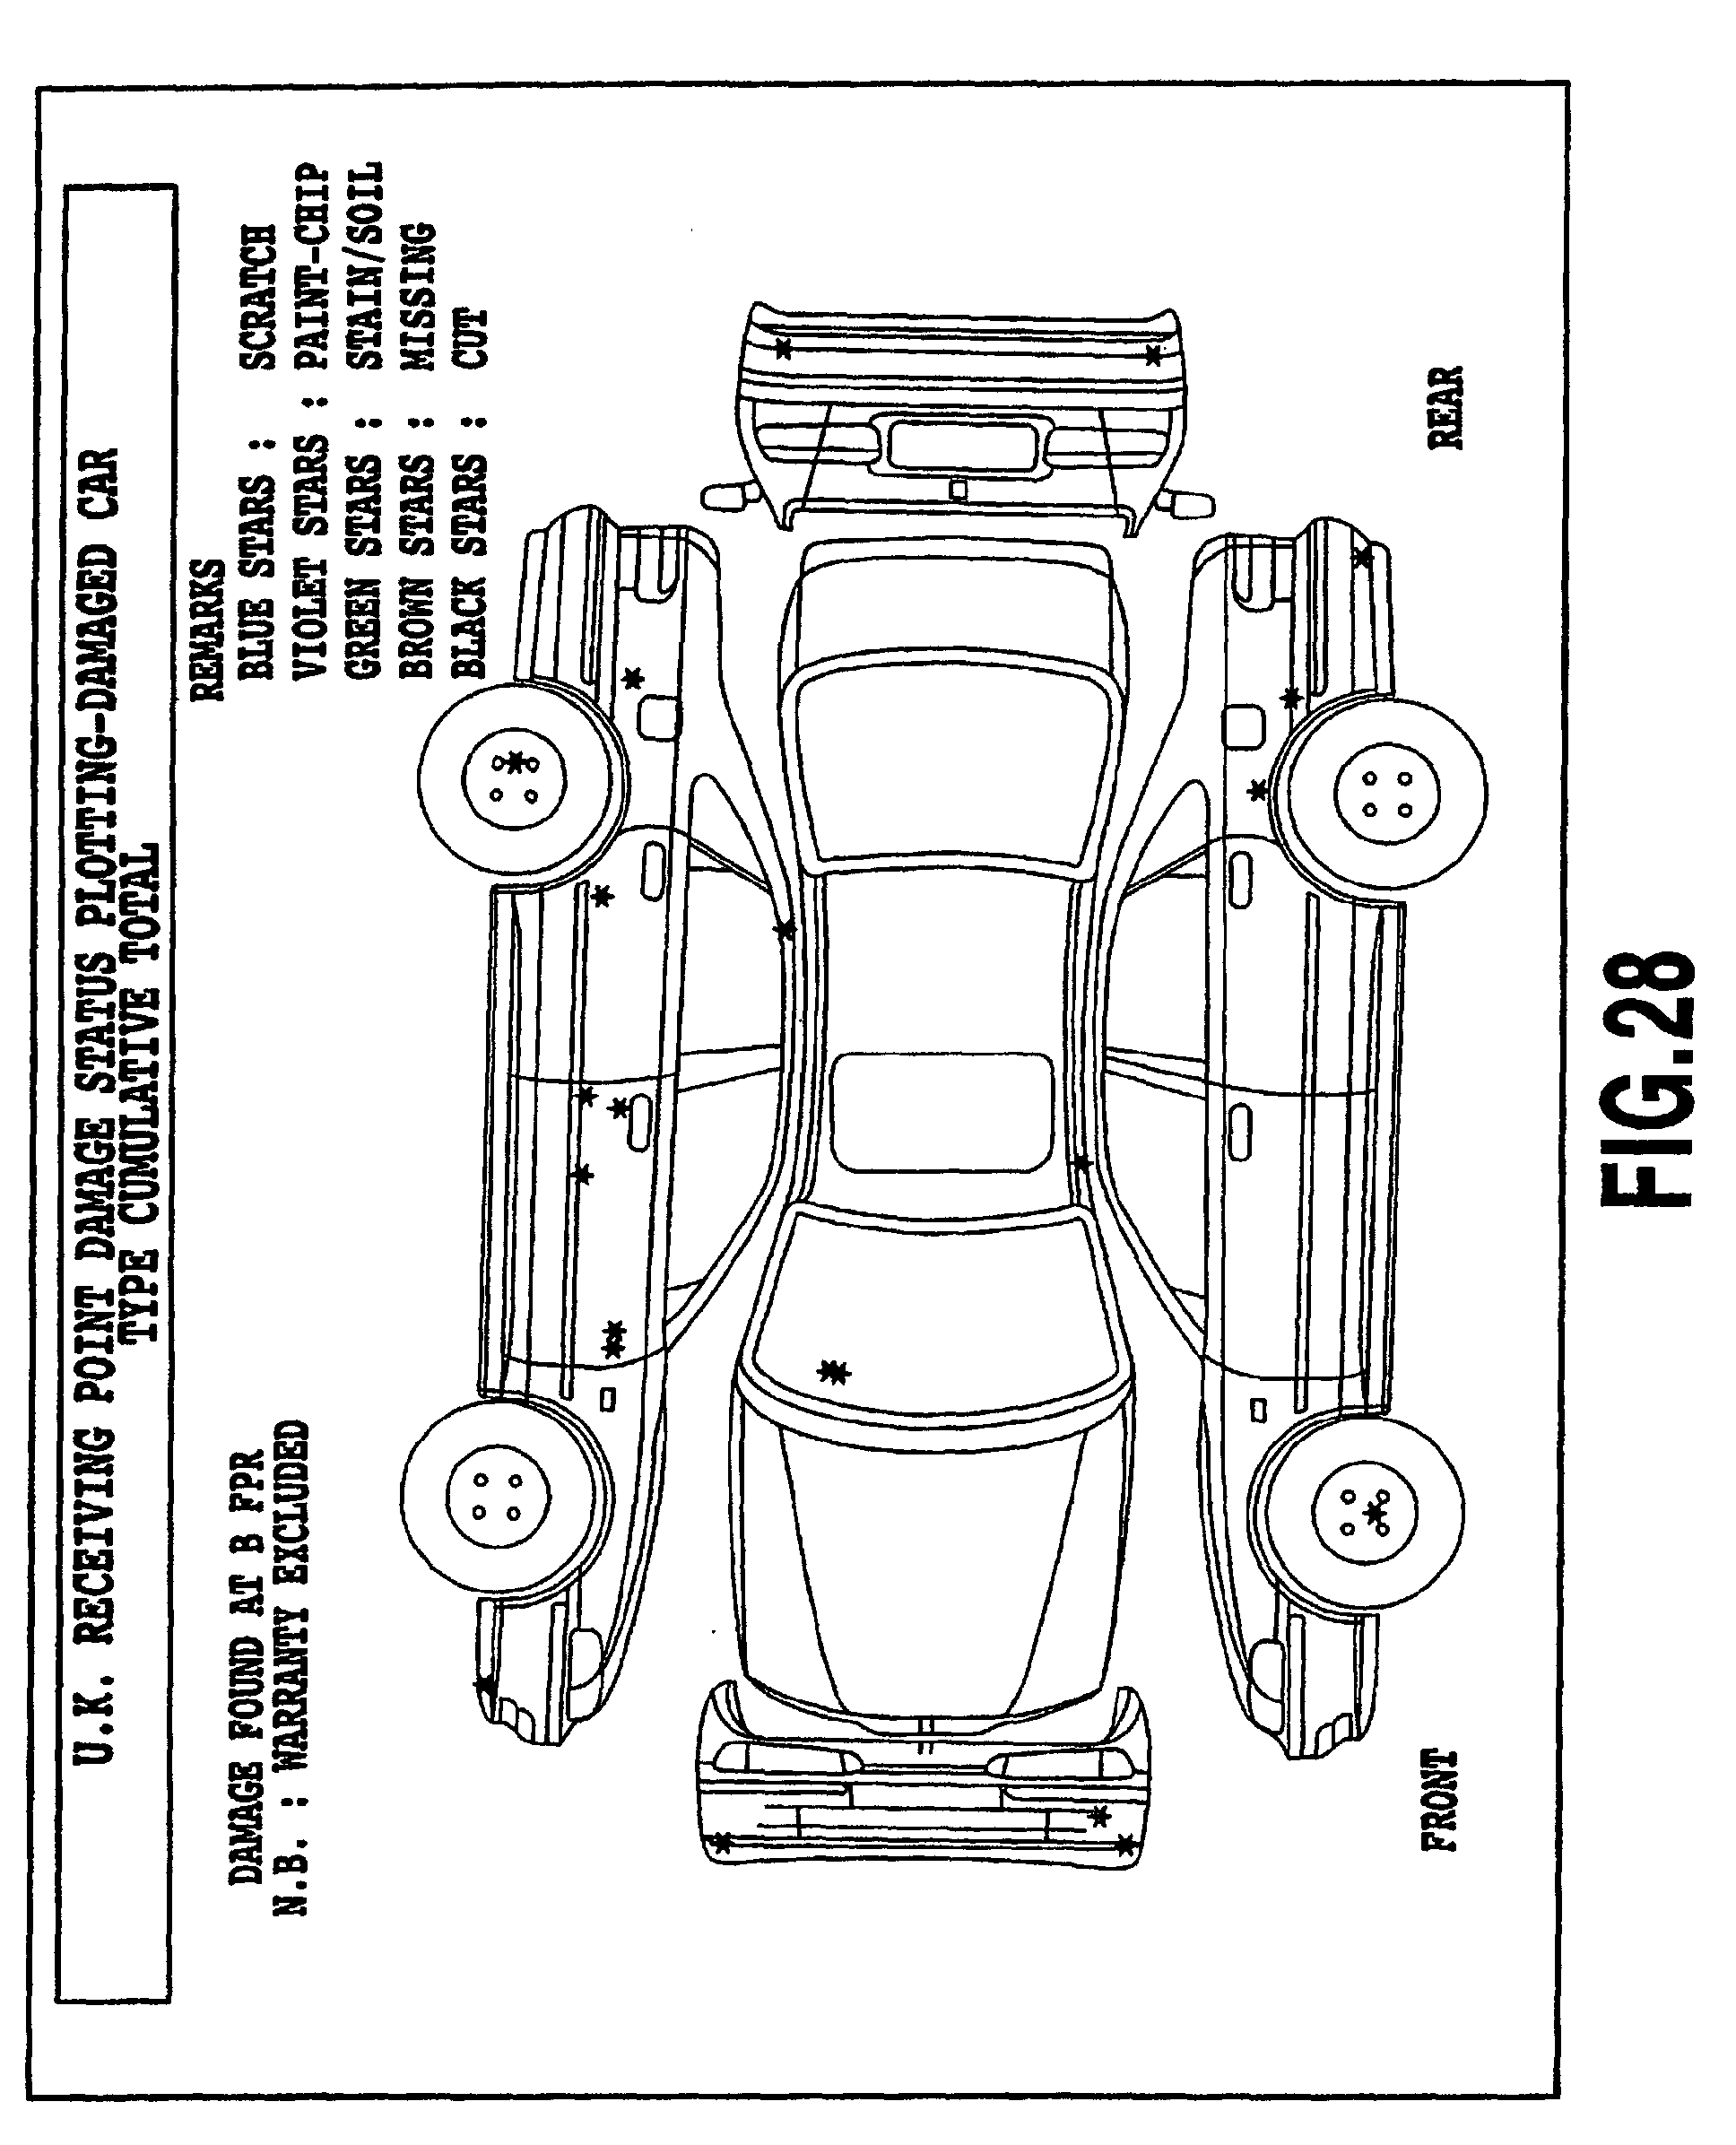 rental truck inspection diagram